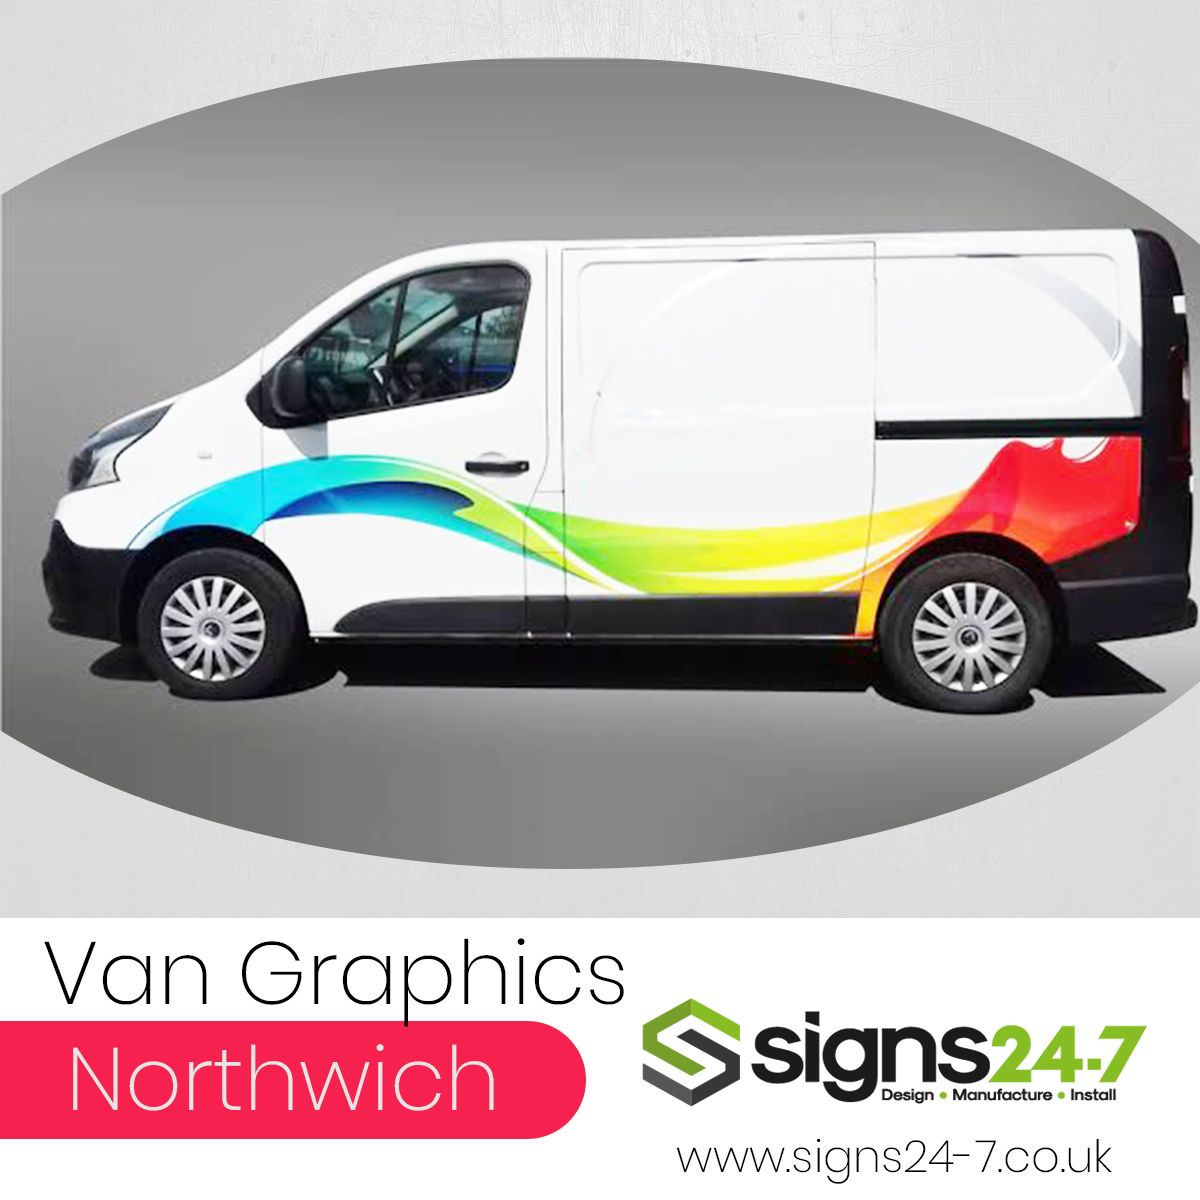 Searching For Van Graphics Designing Company In Northwich We Are